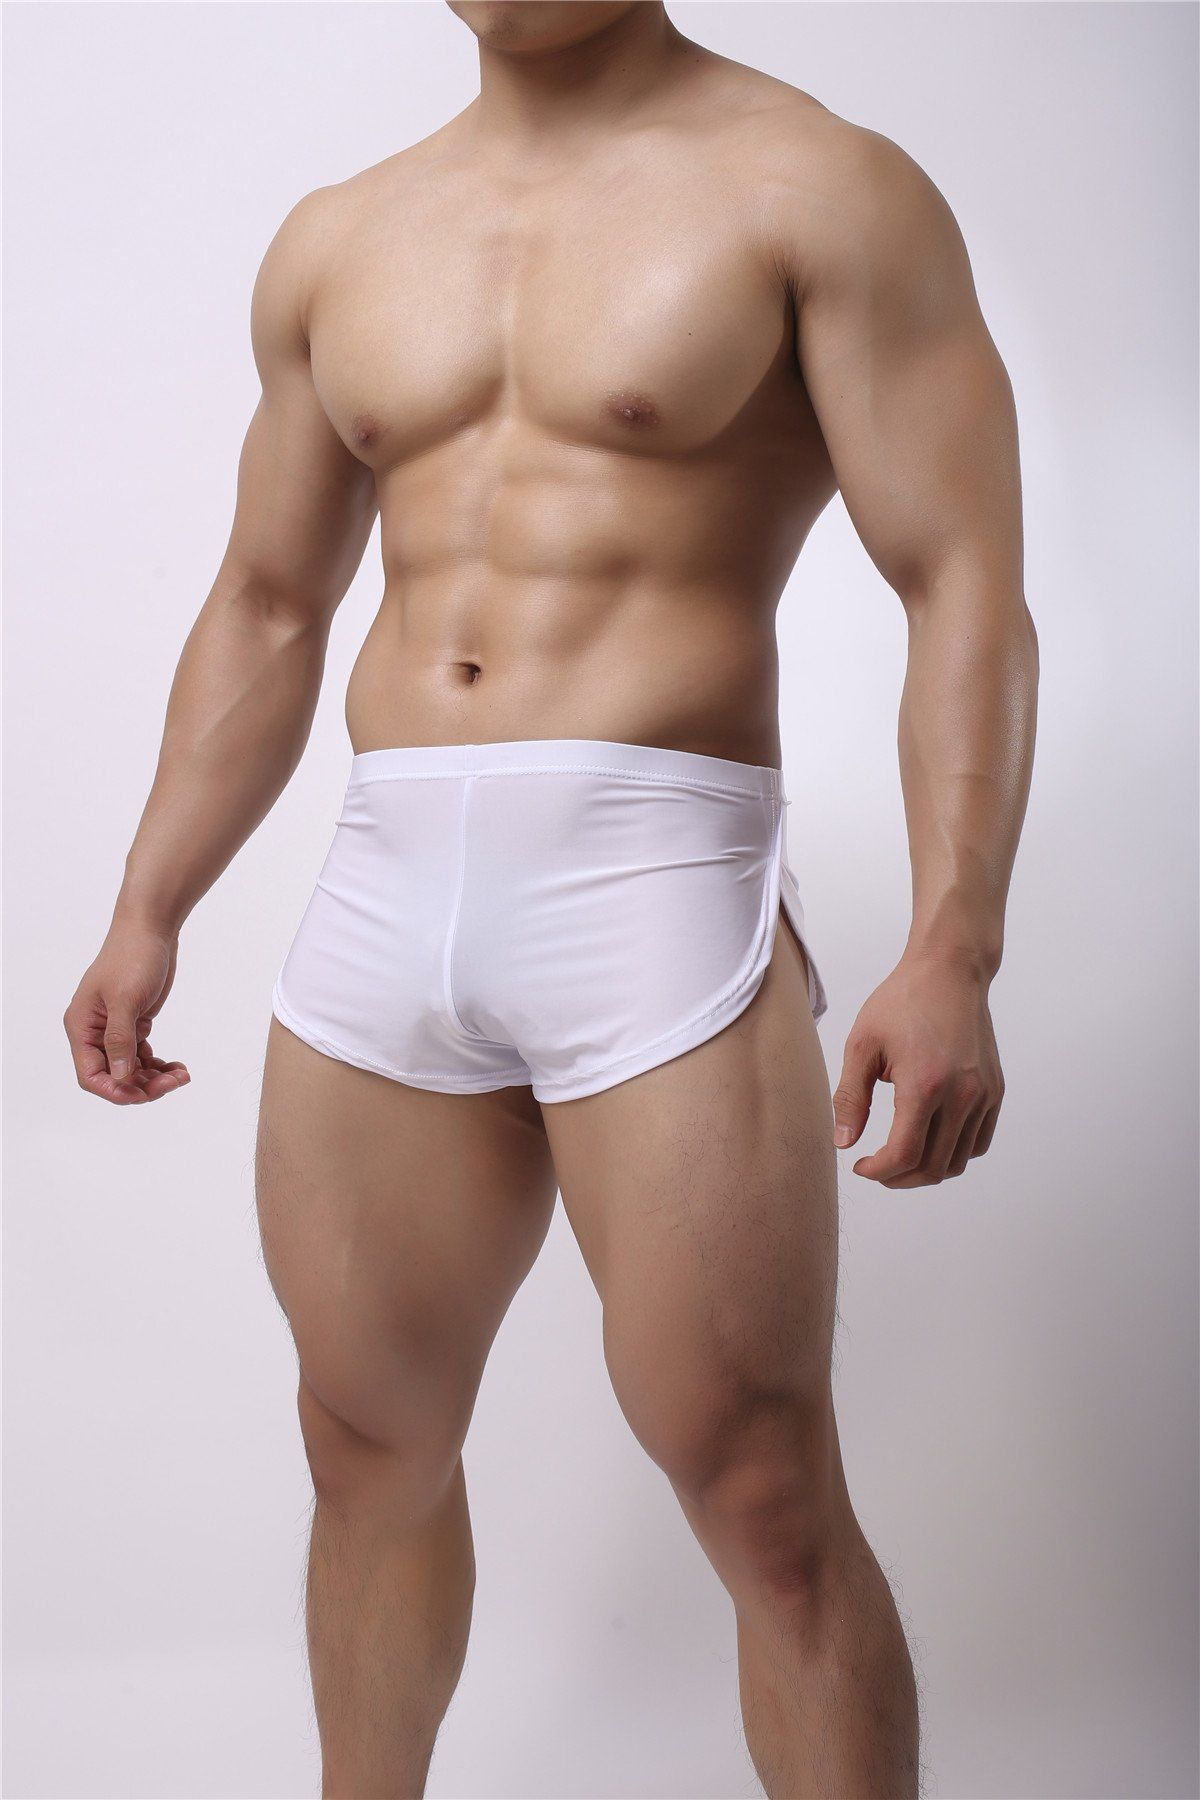 Bulging fetish in man shorts site